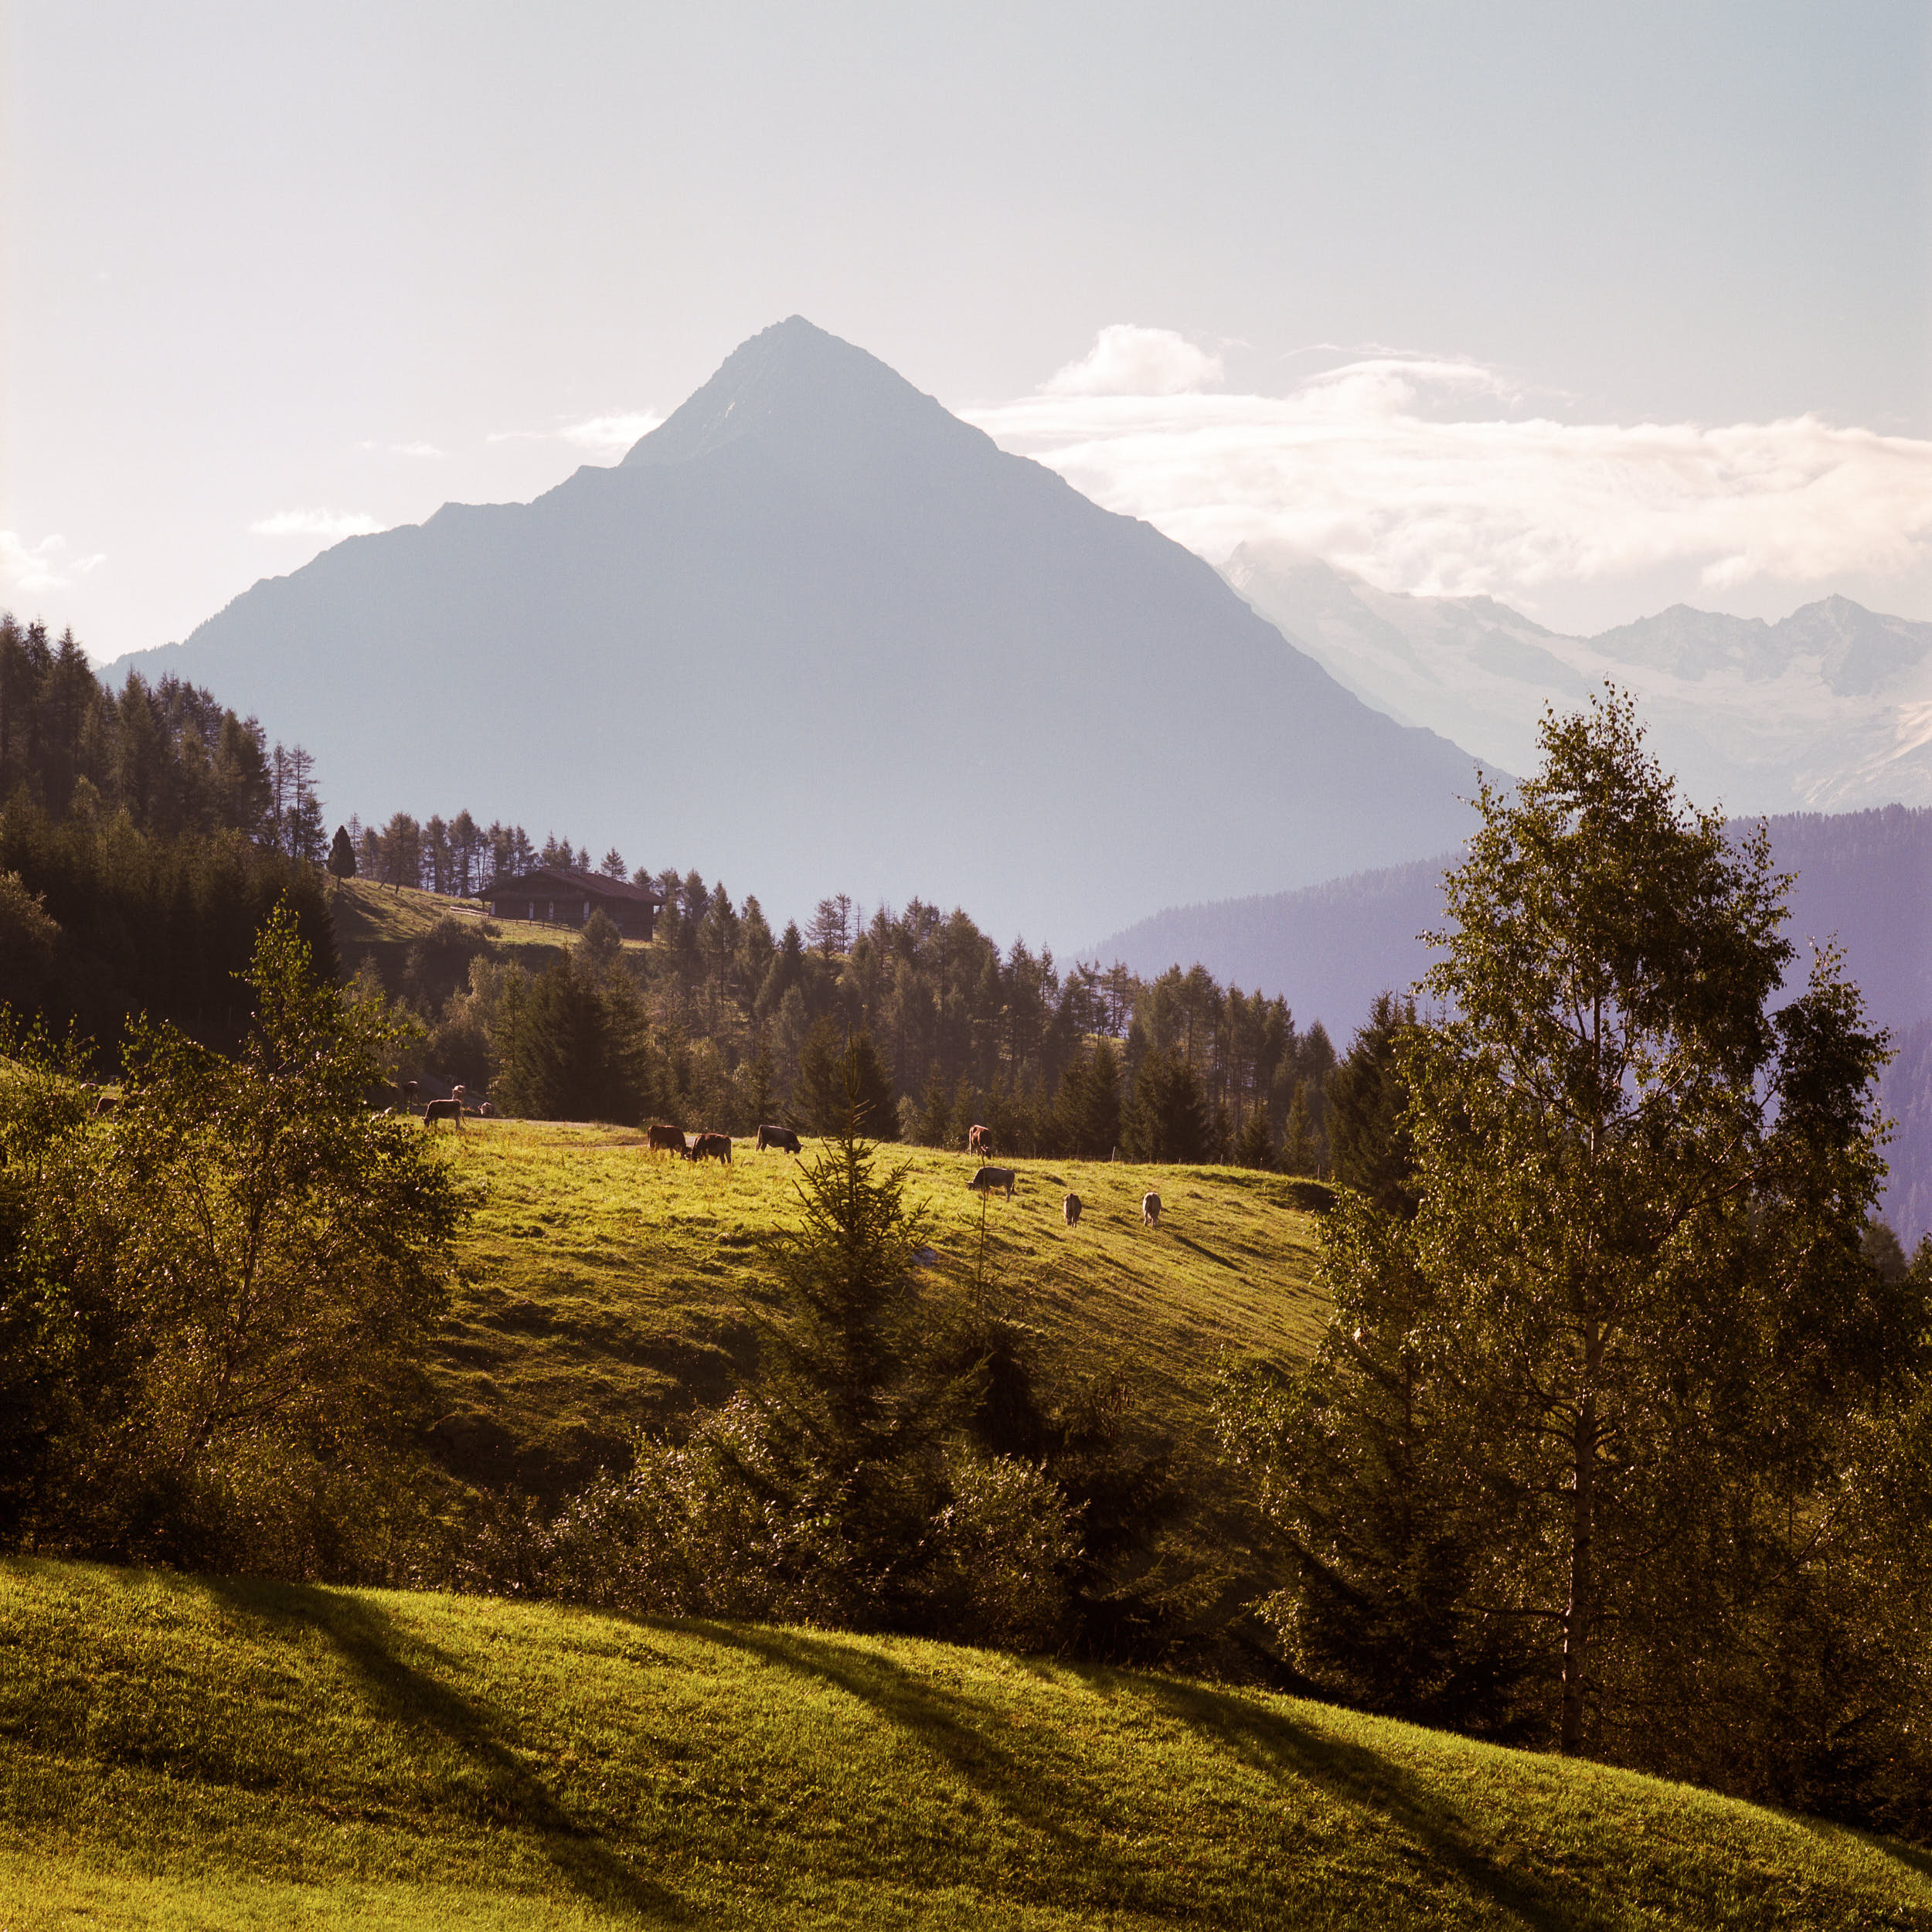 First sunlight hitting the top of alpine peaks with cows in the foreground. Shot on medium format color film.